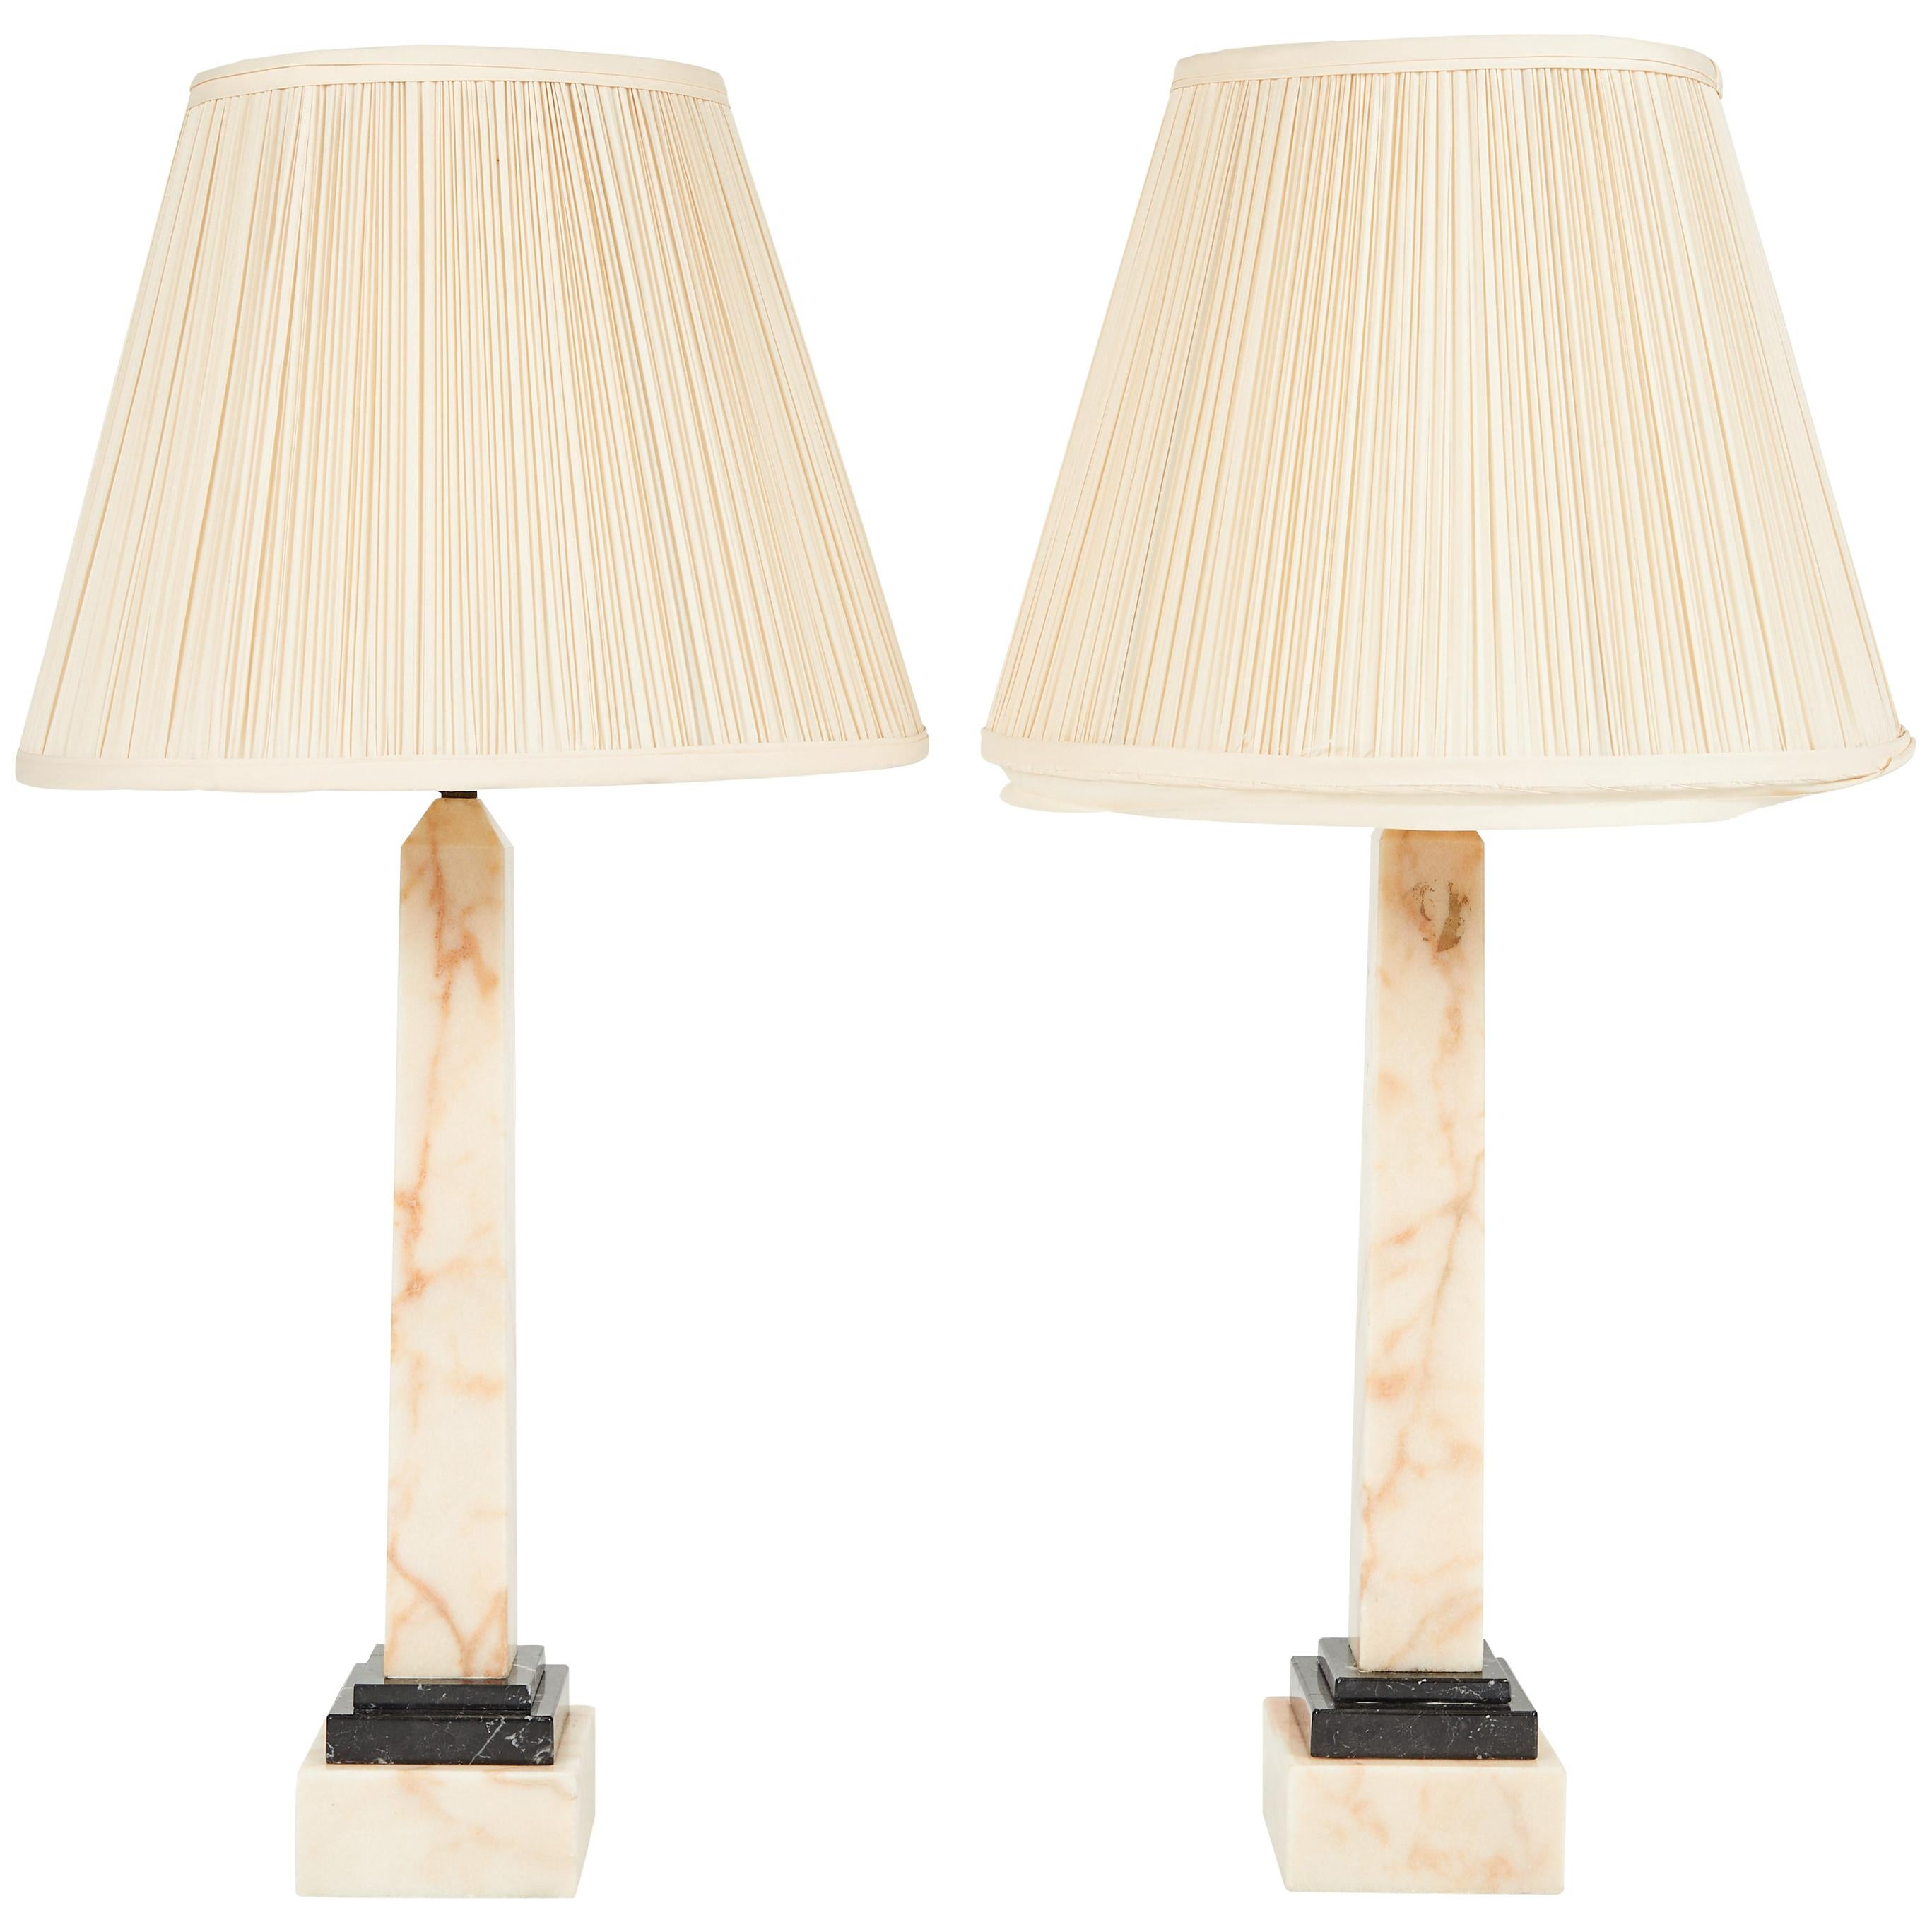 Pair of Two-Toned Marble Obelisk Form Lamps